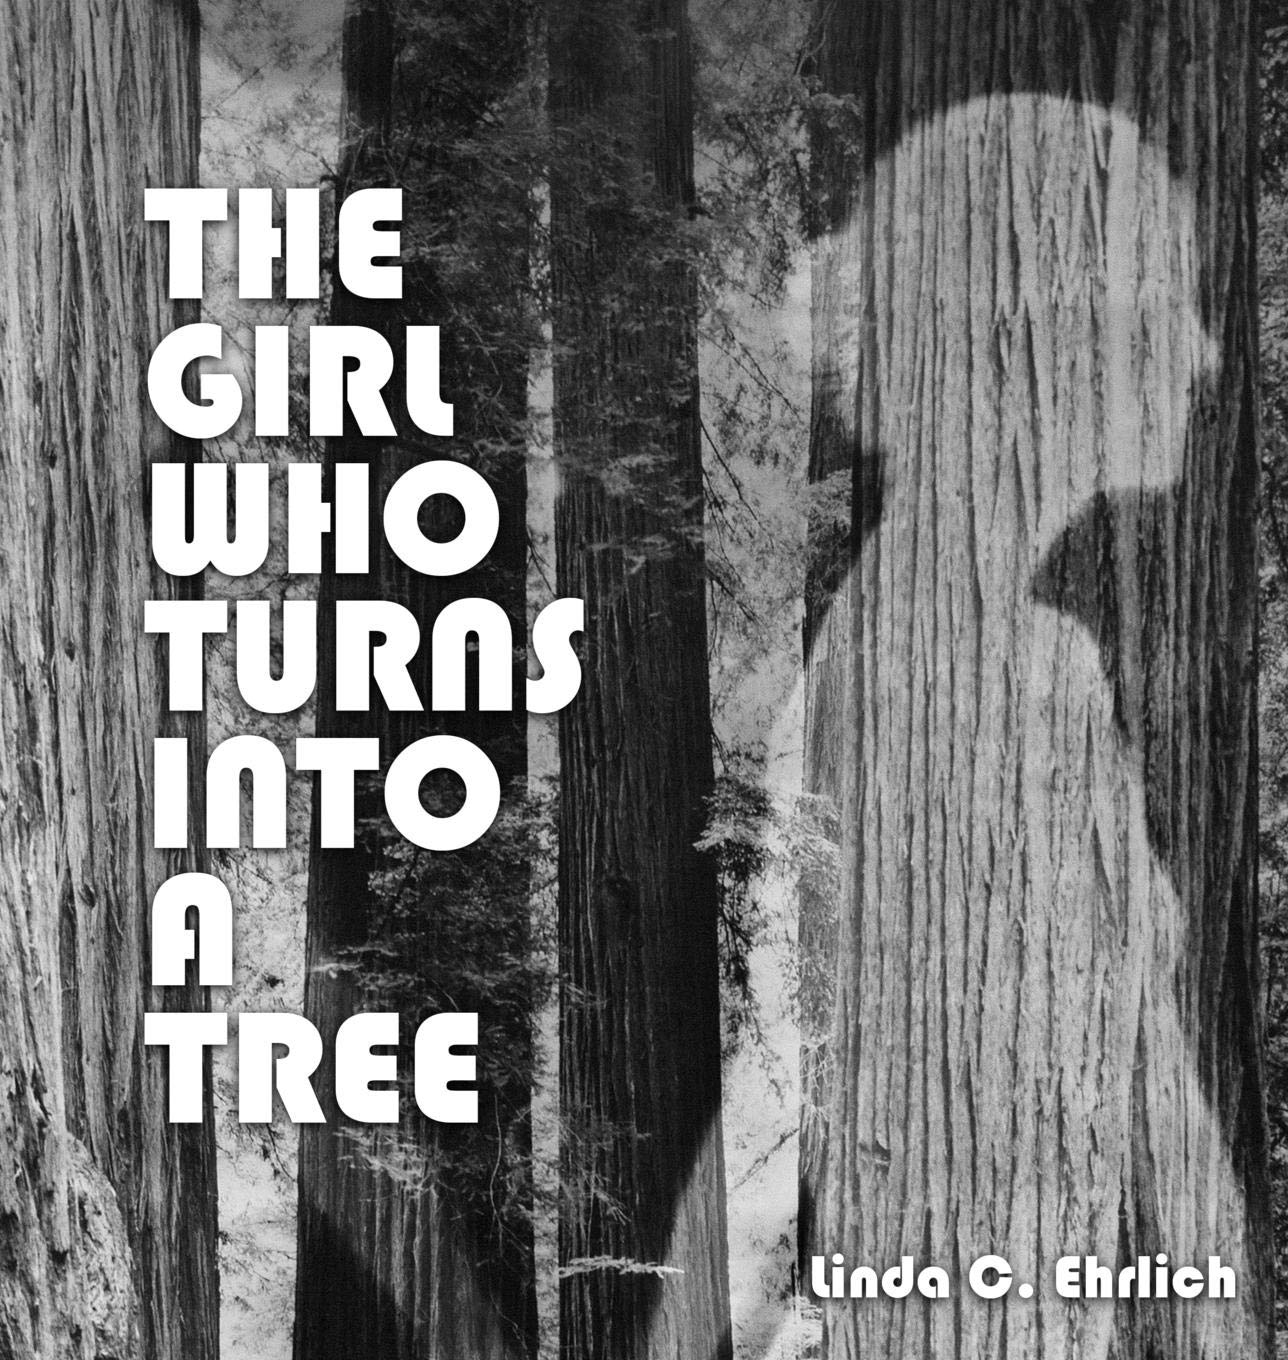 2016: Book cover, The girl who turn into a tree, United States